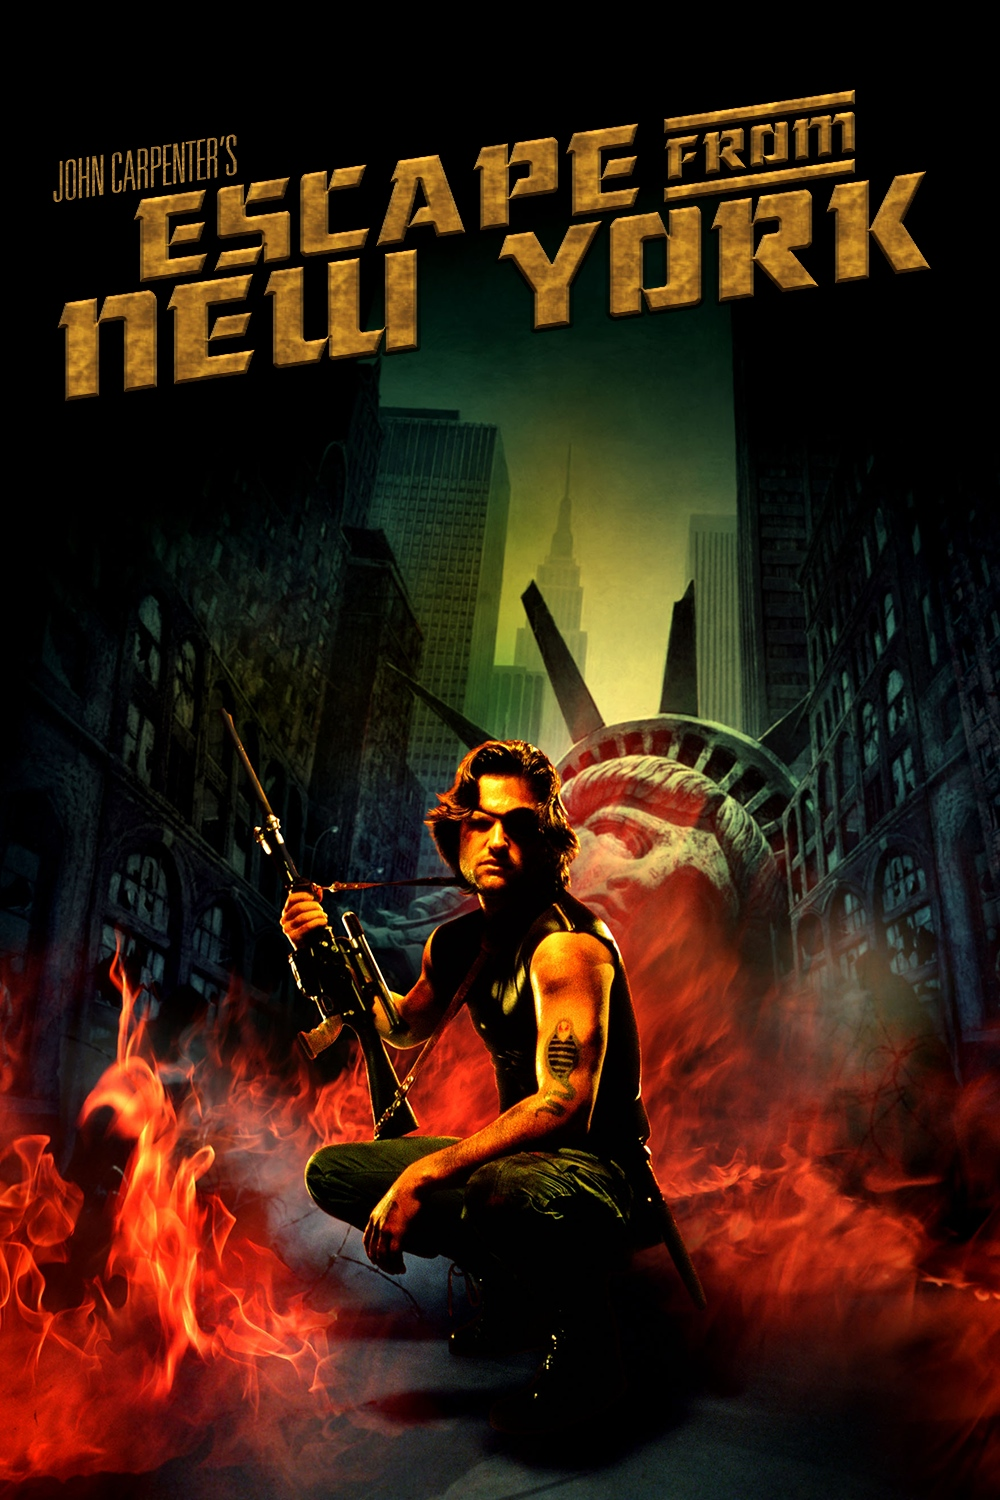 Escape-From-New-York-1981-DVD